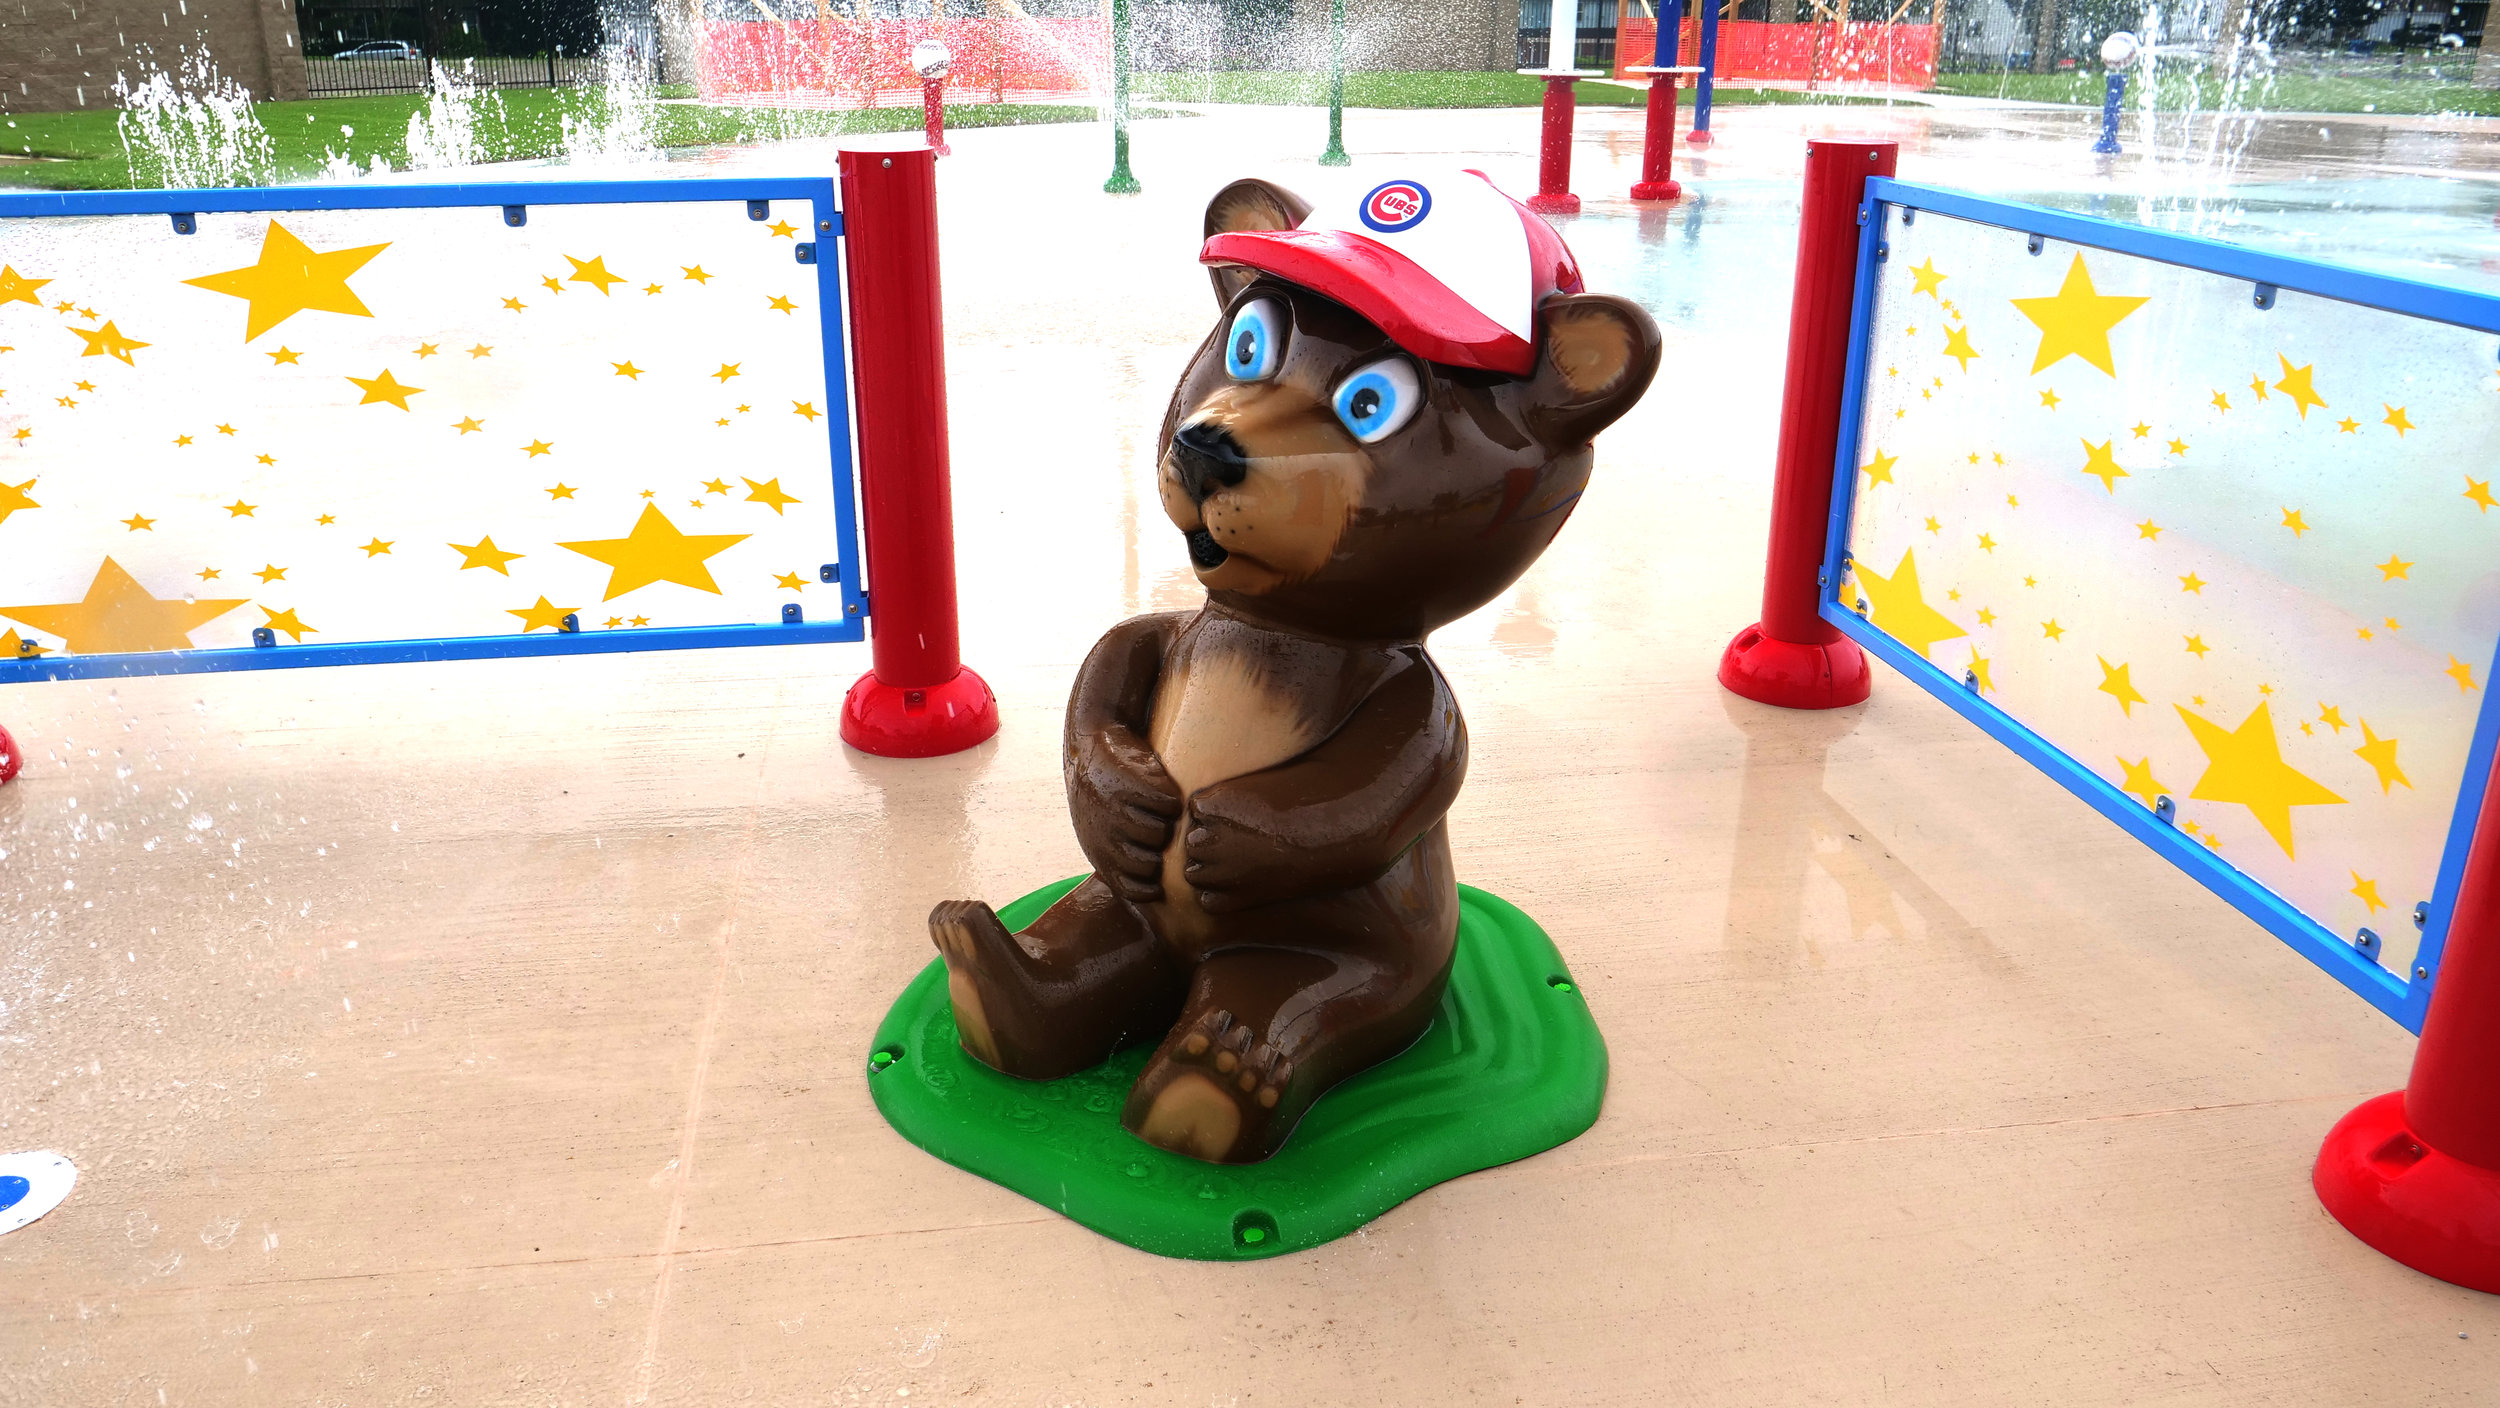 Large sitting bear with a Chicago's Cub hat in the kids play area at Peru's Splash Field in IL